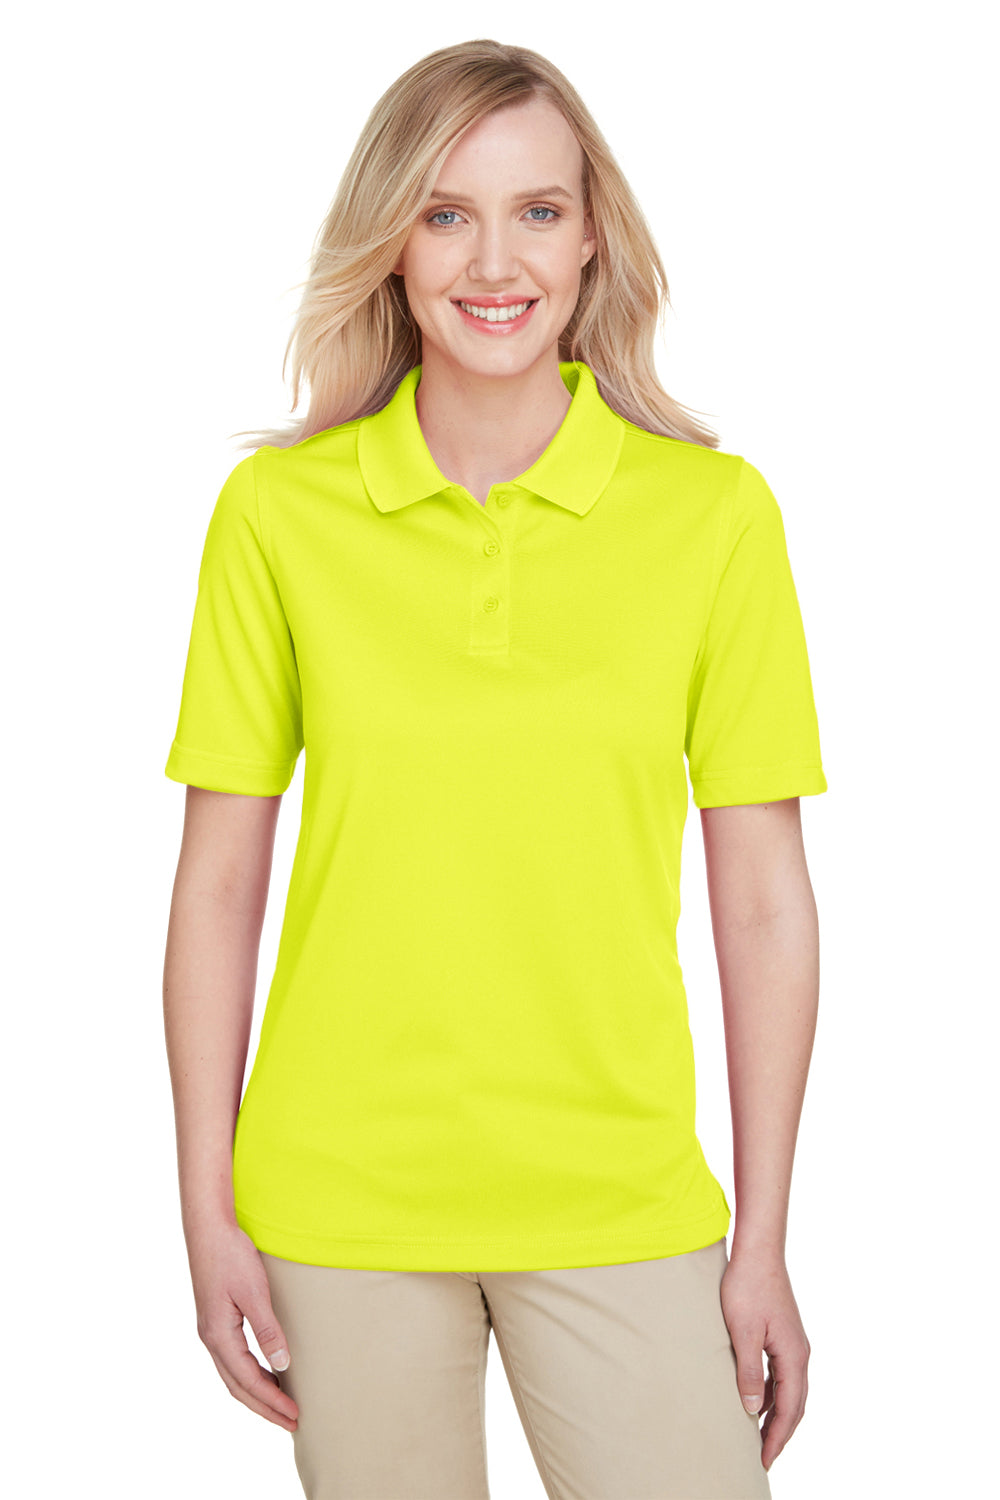 Harriton M348W Womens Advantage Performance Moisture Wicking Short Sleeve Polo Shirt Safety Yellow Front